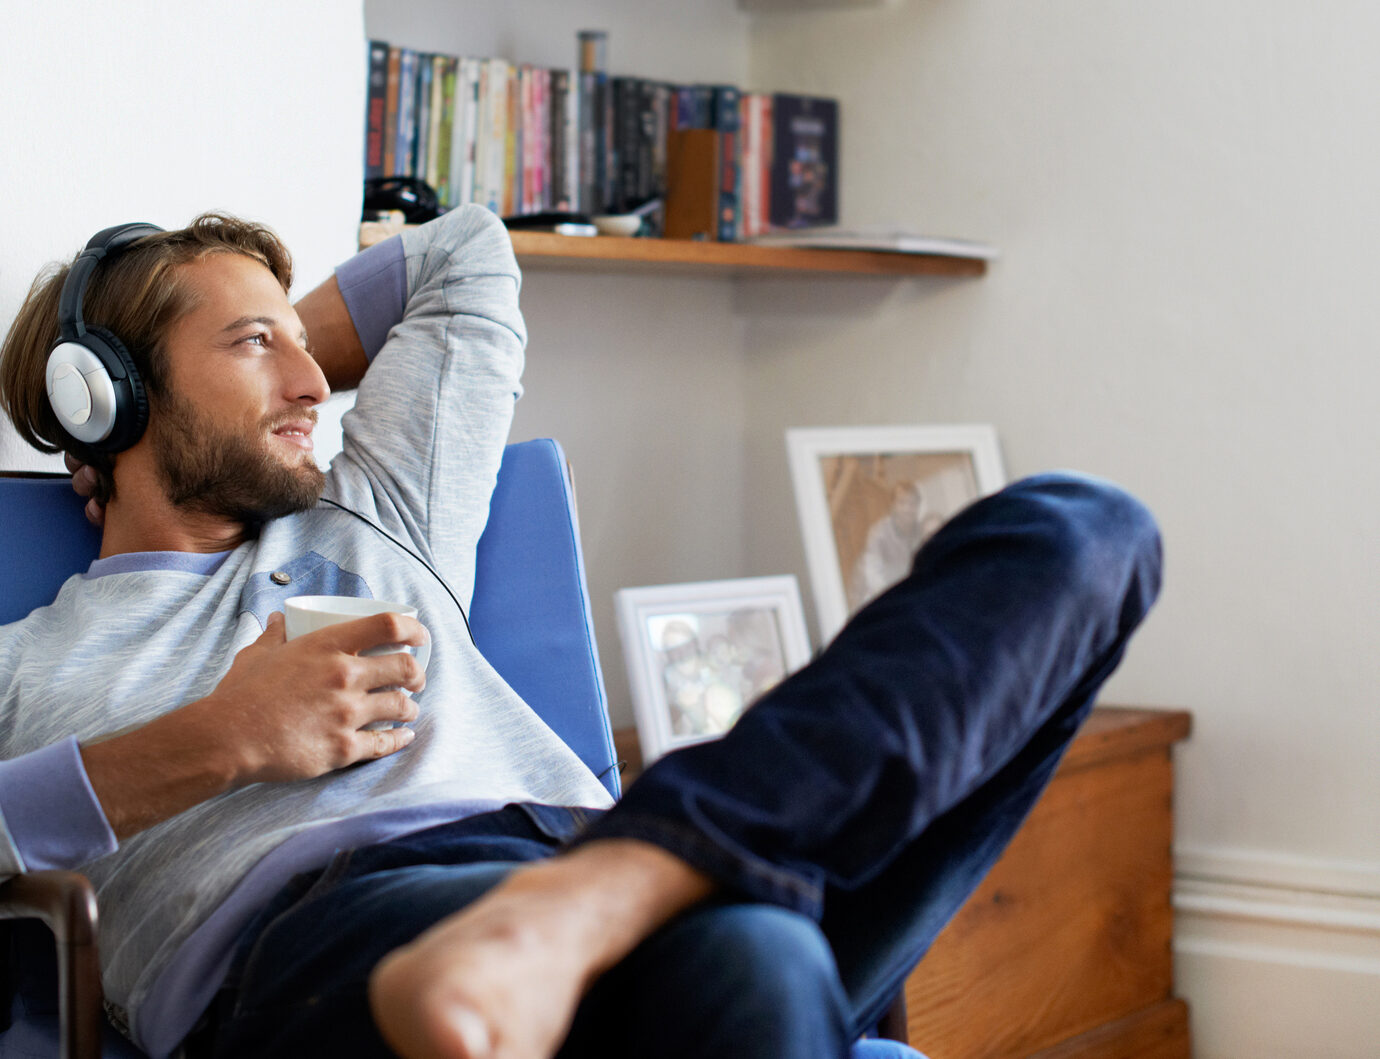 Shot of a young man having coffee while listening to music at home.